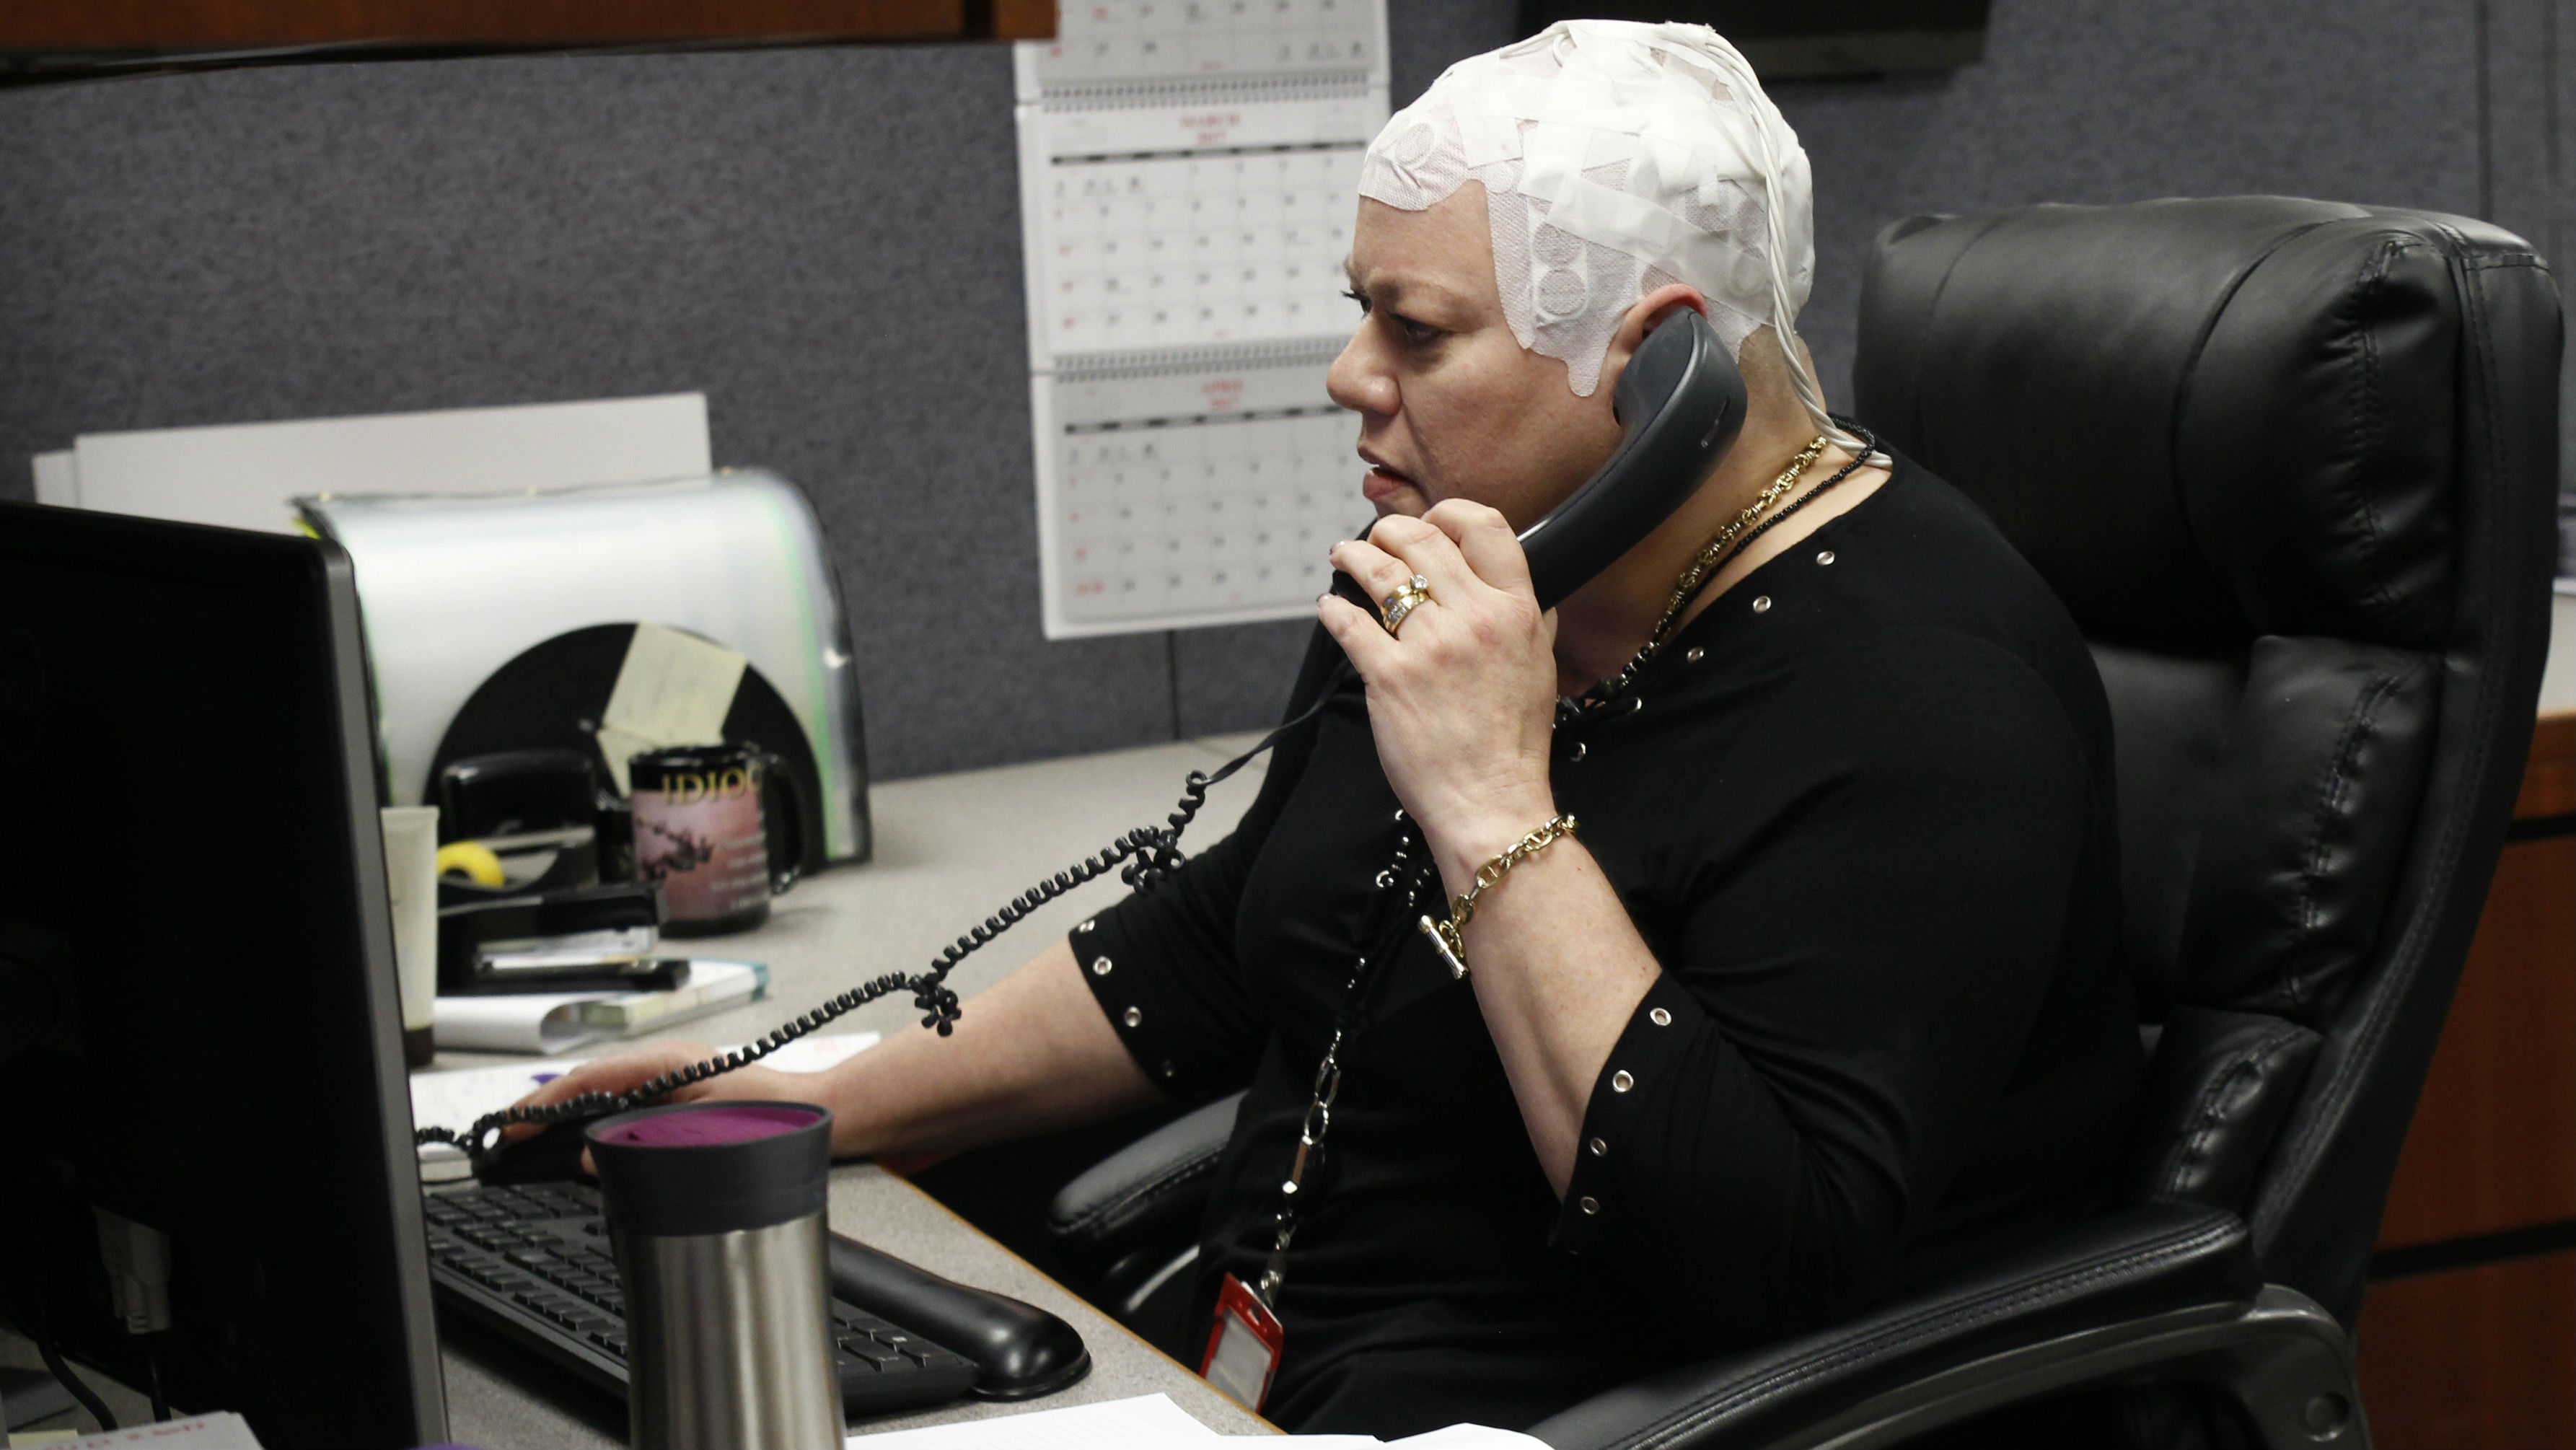 A patient wearing the Optune therapy device makes a phone call while at an office.